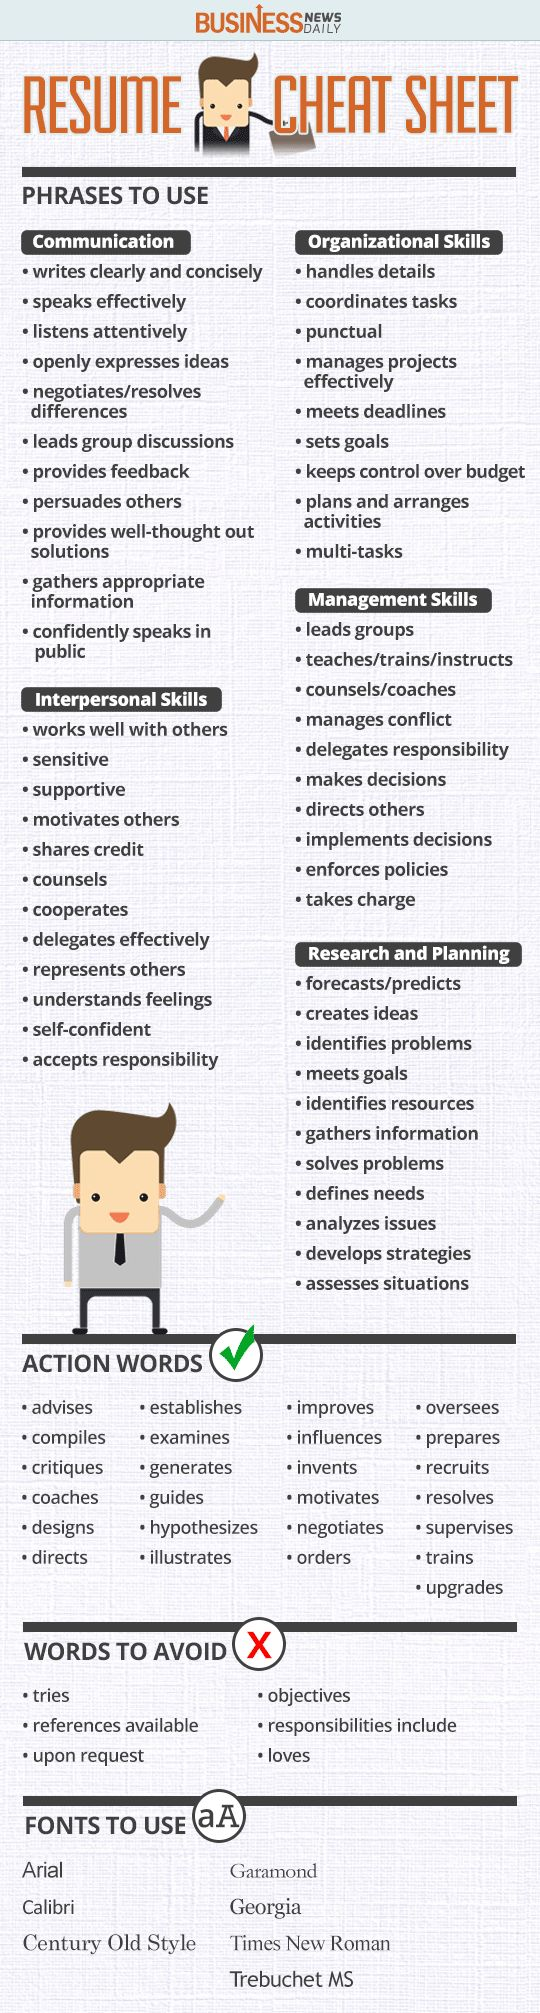 Opposenewapstandardsus  Surprising  Ideas About Resume On Pinterest  Cv Format Resume Cv And  With Gorgeous Resume Cheat Sheet Infographic Andrews Almost Done With A Complete Unit On Employment Which With Enchanting Fire Fighter Resume Also Do I Need A Cover Letter For My Resume In Addition Courier Resume And Resume Worksheet For High School Students As Well As Resume For Sales Rep Additionally High School Resume For College Template From Pinterestcom With Opposenewapstandardsus  Gorgeous  Ideas About Resume On Pinterest  Cv Format Resume Cv And  With Enchanting Resume Cheat Sheet Infographic Andrews Almost Done With A Complete Unit On Employment Which And Surprising Fire Fighter Resume Also Do I Need A Cover Letter For My Resume In Addition Courier Resume From Pinterestcom